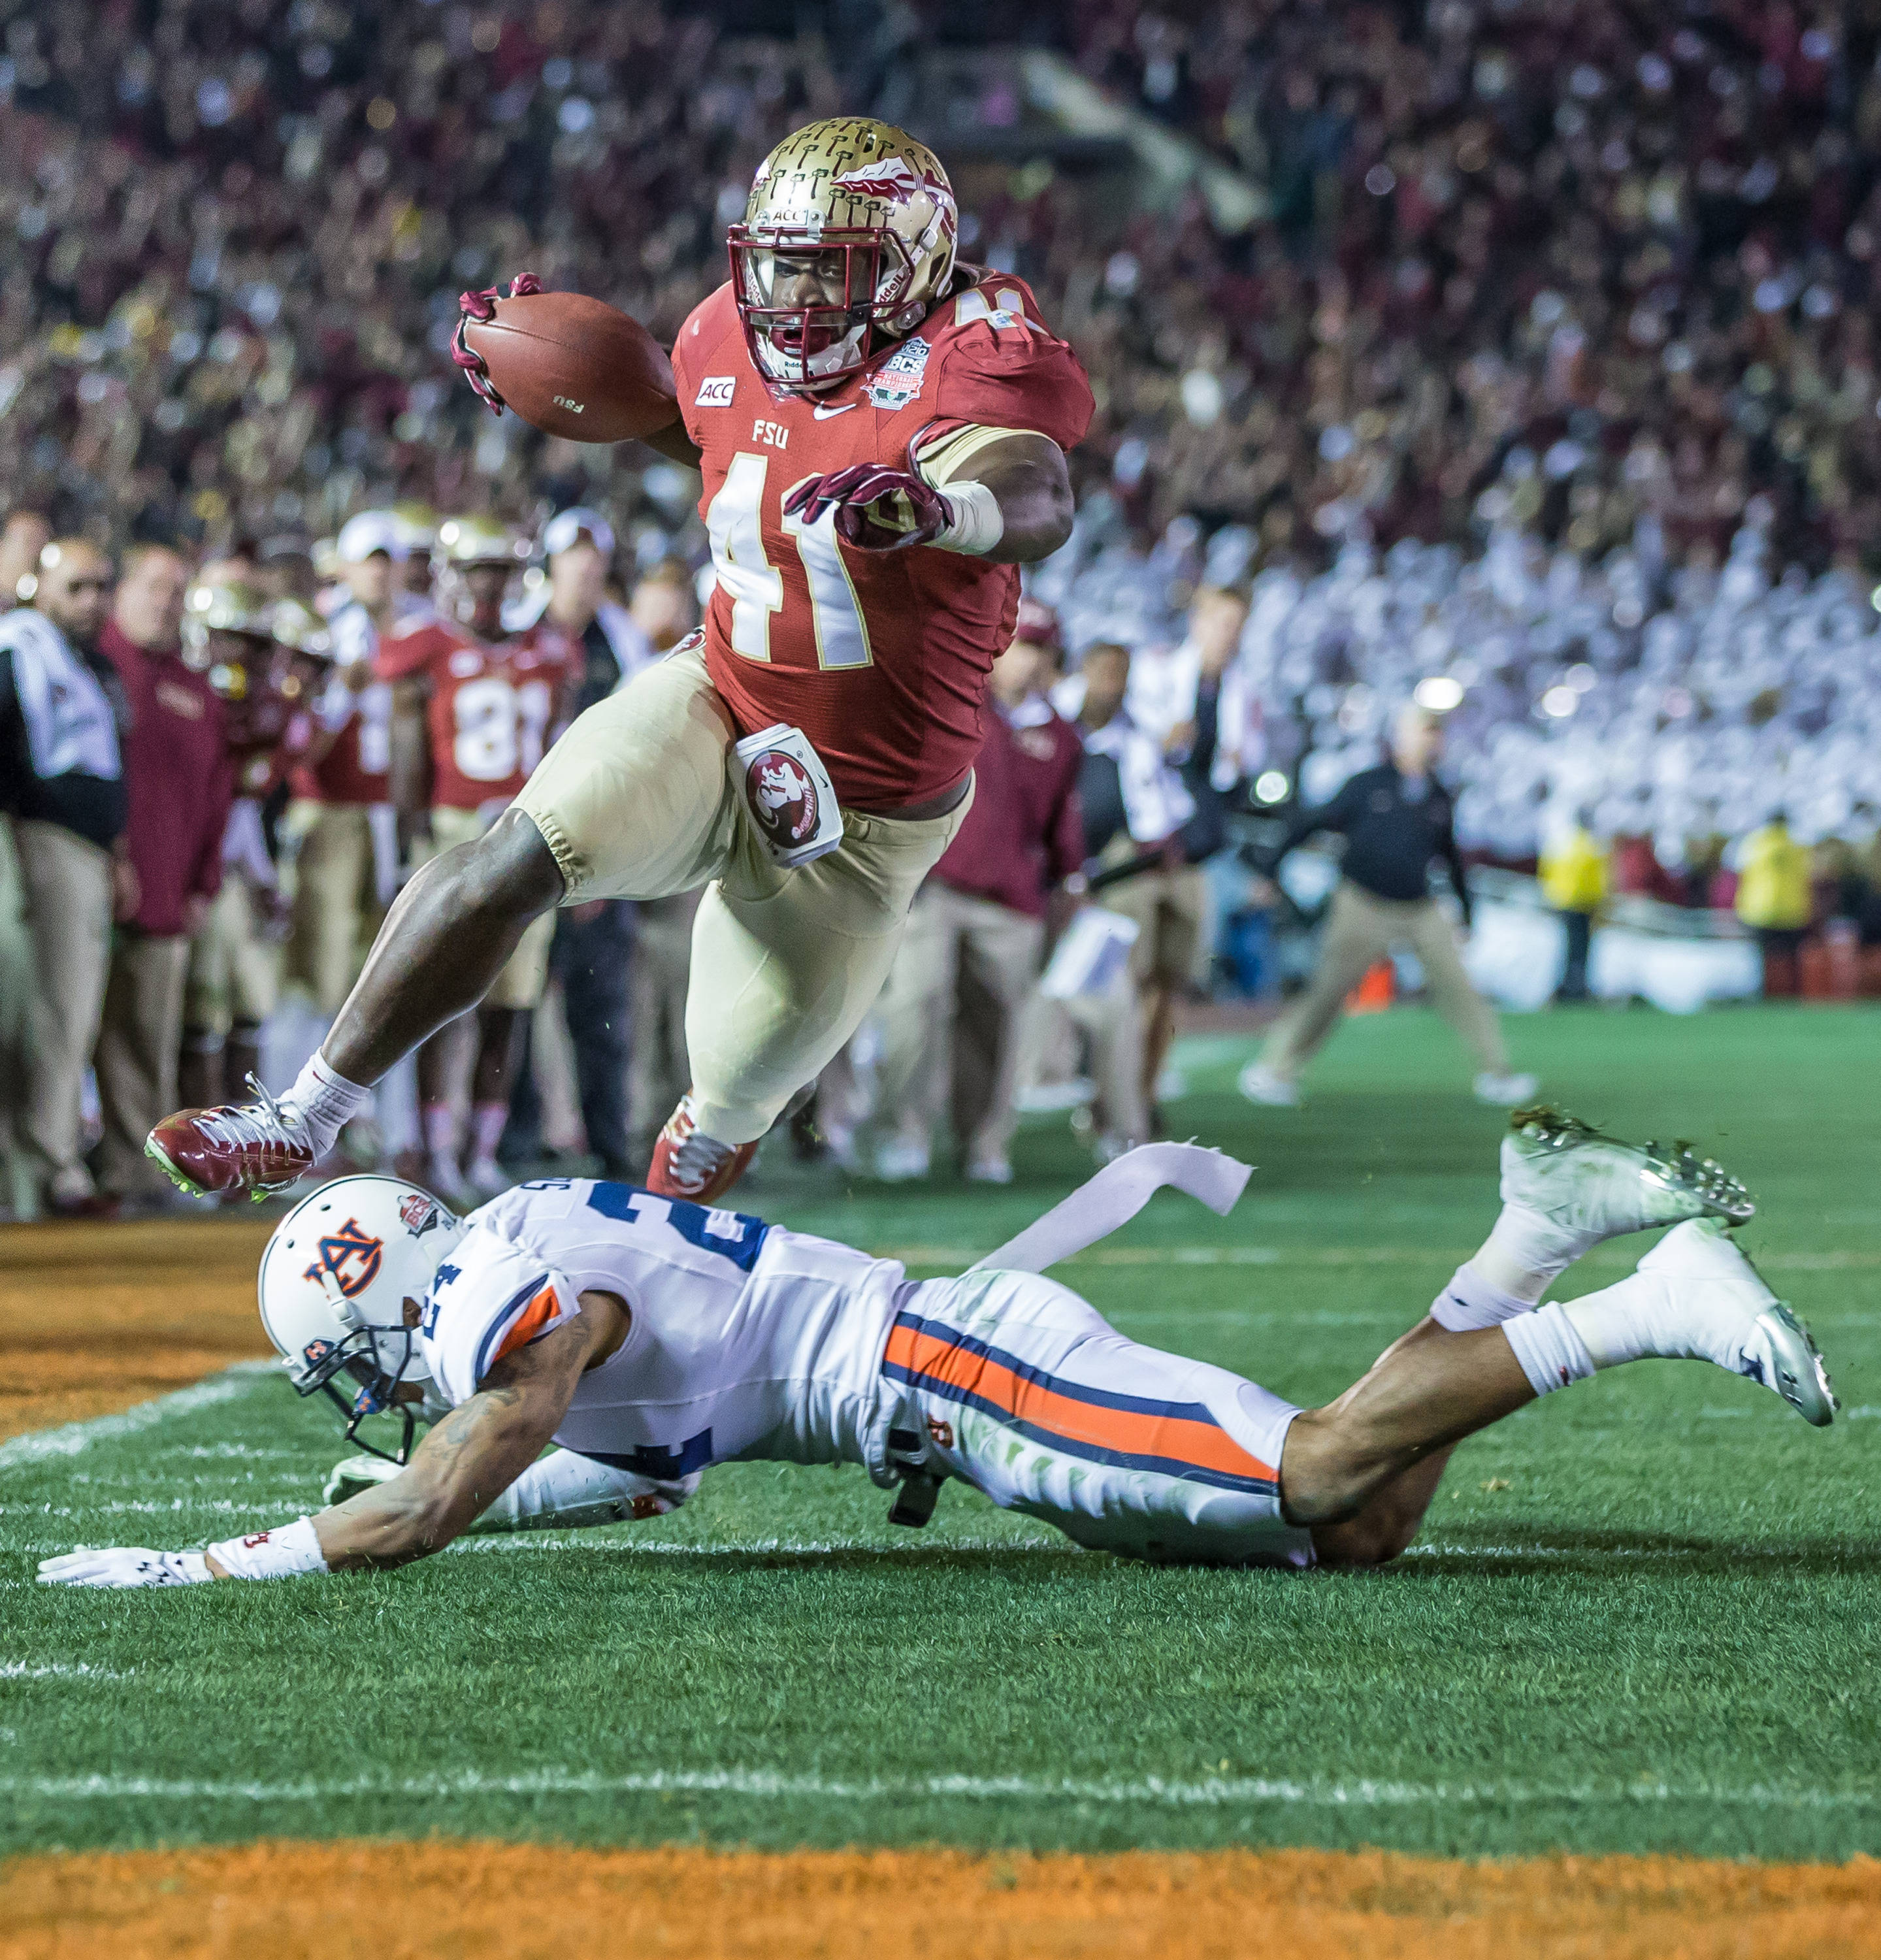 Chad Abram (41) scores FSU's 2nd TD at the start of the 4th quarter.